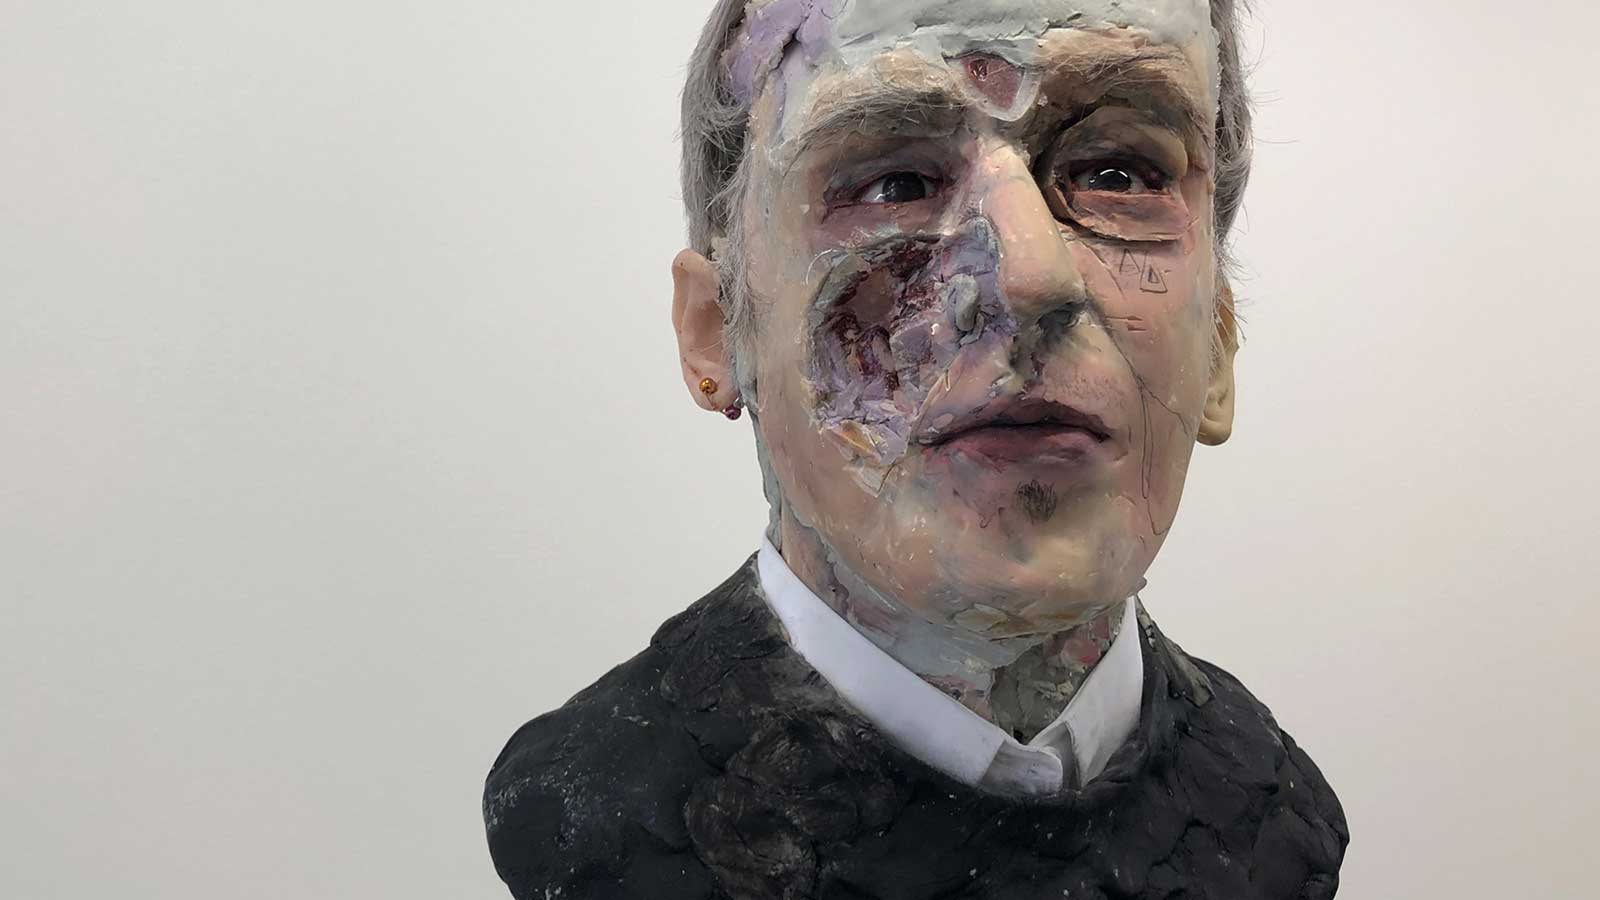 "David Altmejd ,  Man with Black Sweater , 2018, Urethane foam, concrete, epoxy clay, resin, epoxy gel, syntheric hair, steel, acrylic paint, quartz, graphite, glass paint, shir collar, glass eyes, copper wire bead, rhinestone, MSA varnish, 29"" x 10 1/2"" x 12"" (73,7 x 26,7 x 30,5 cm) (Detail)"